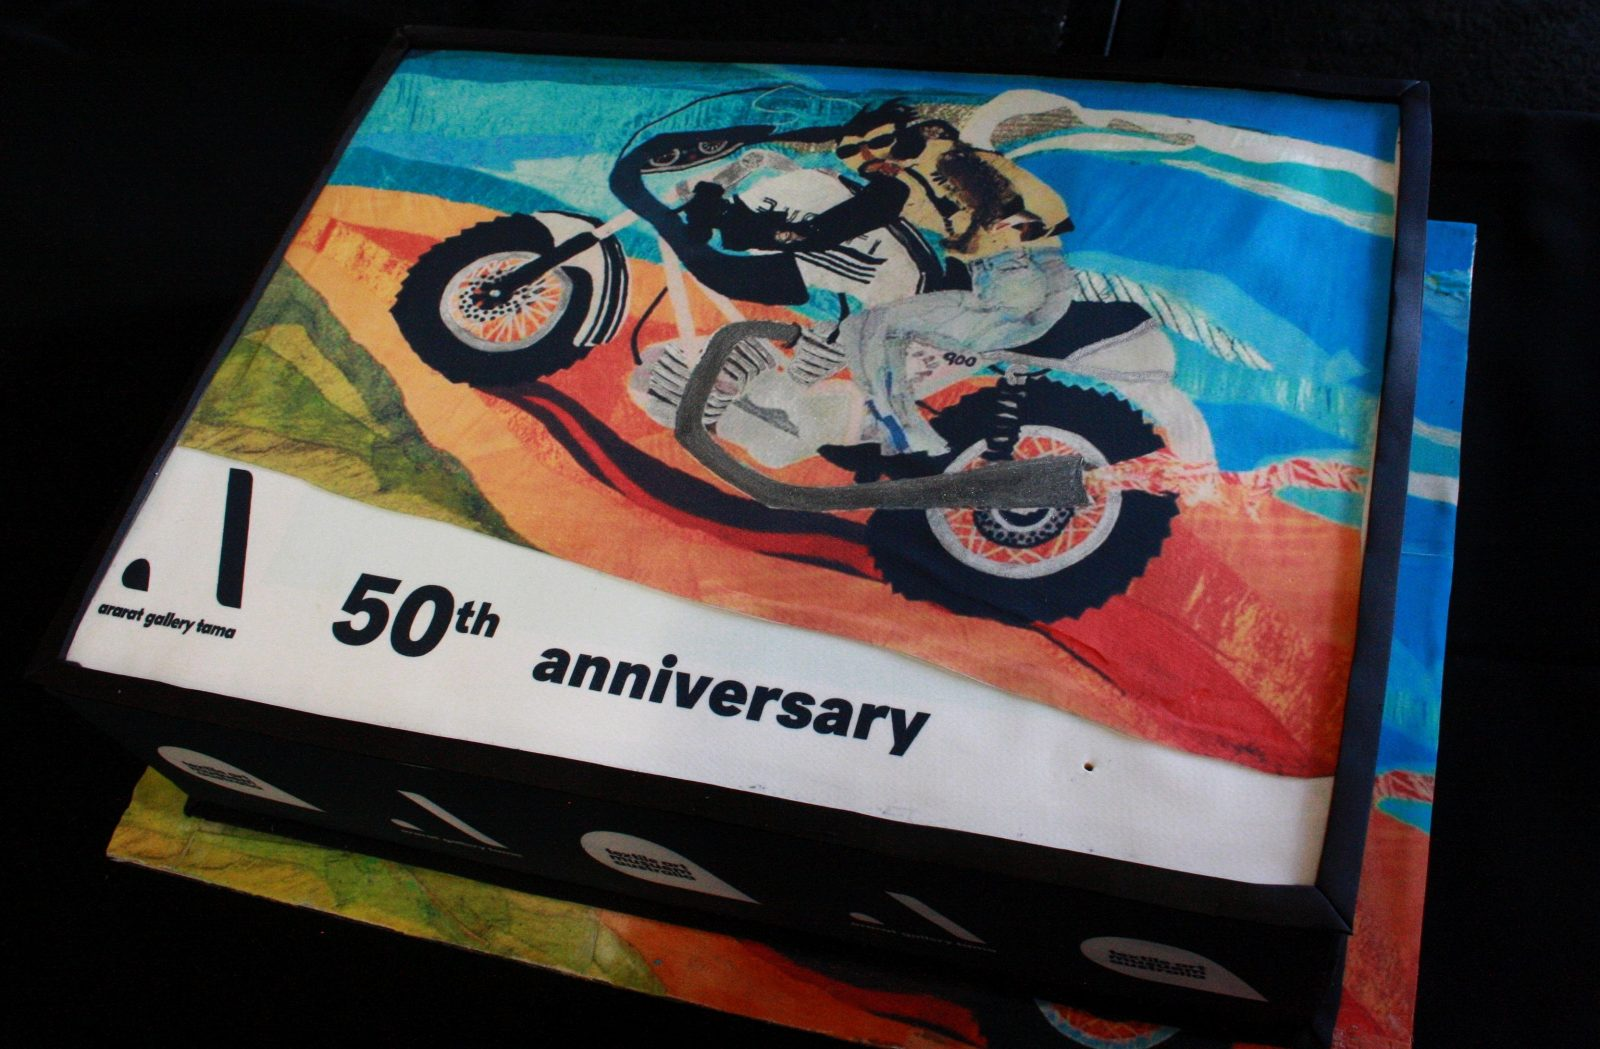 fifty and fifty something: celebrating 50 years of collecting fibre art